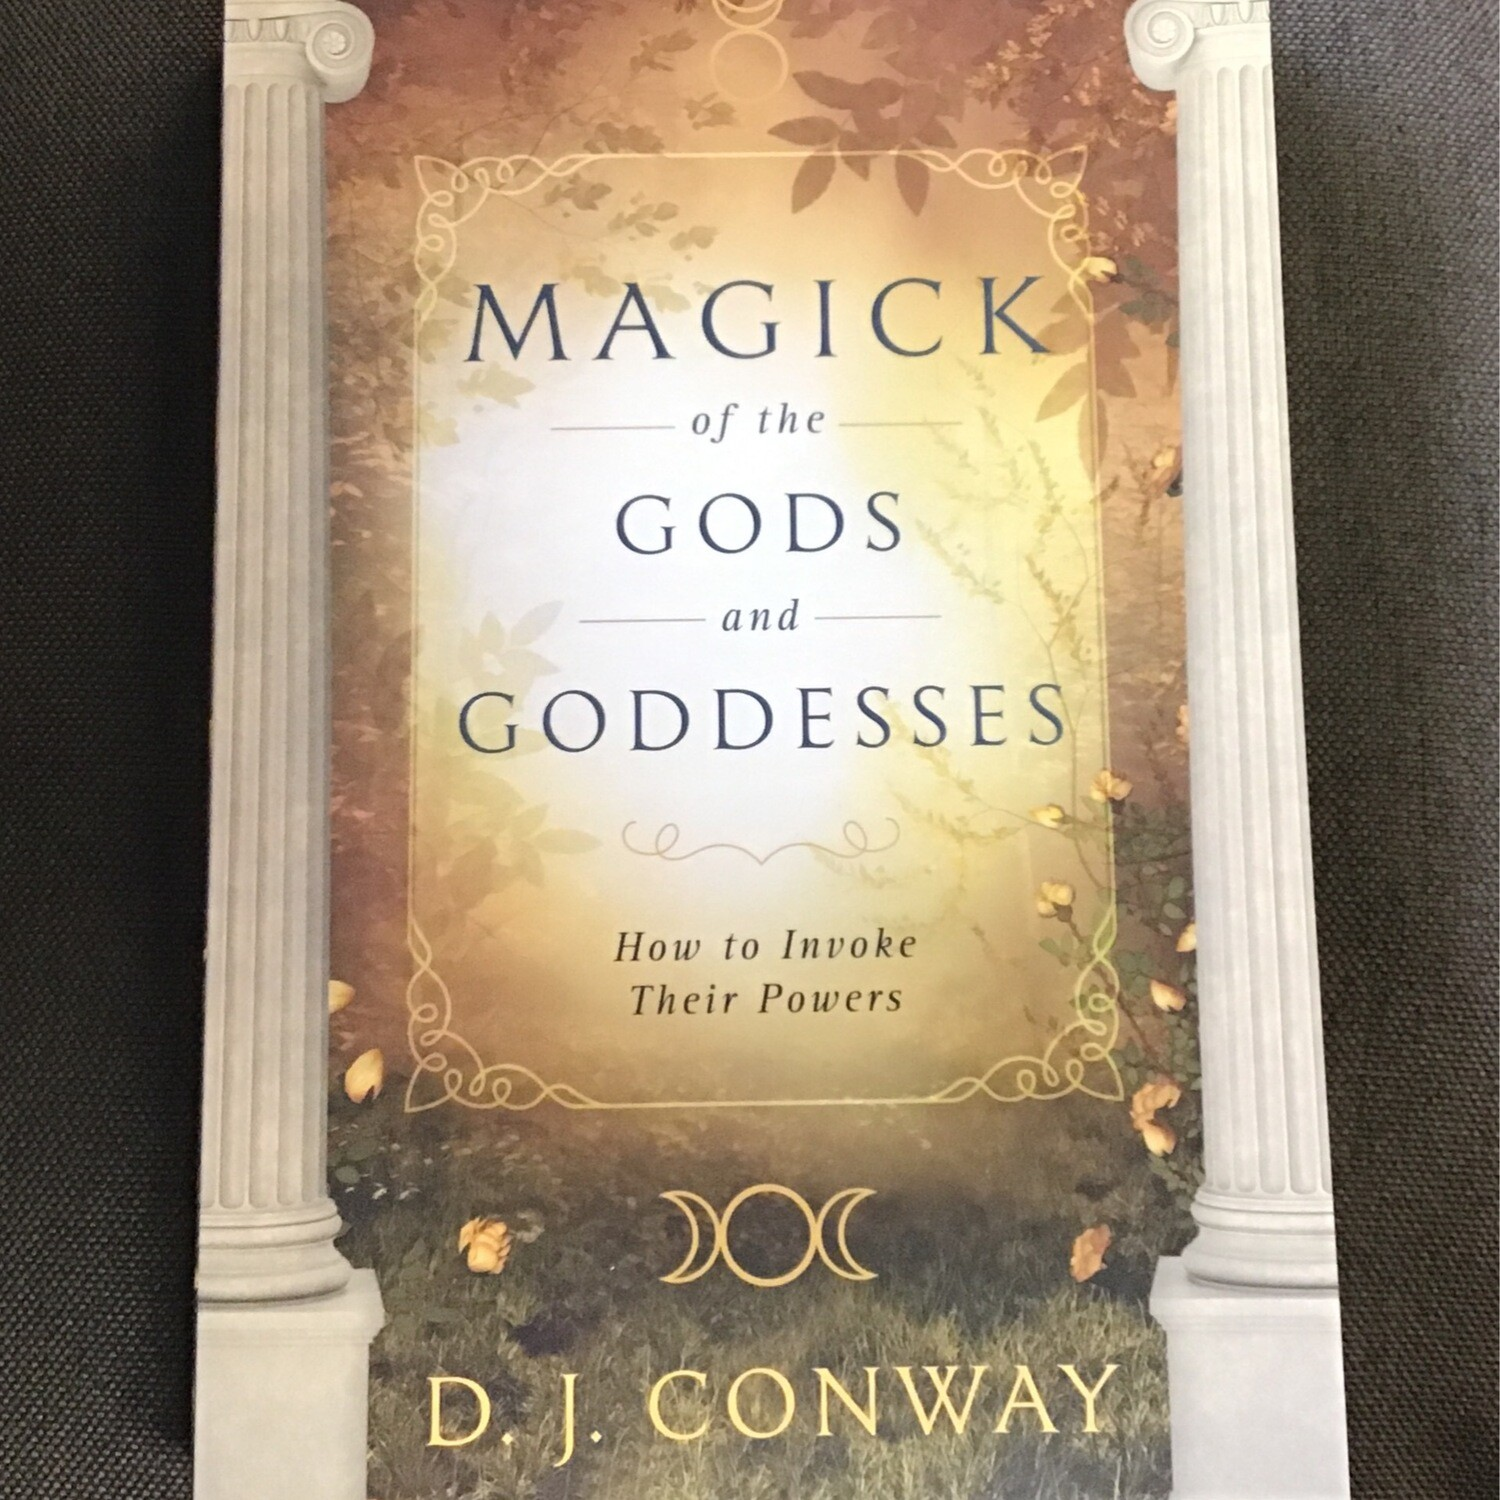 Magick of the Gods & Goddesses by D.J. Conway